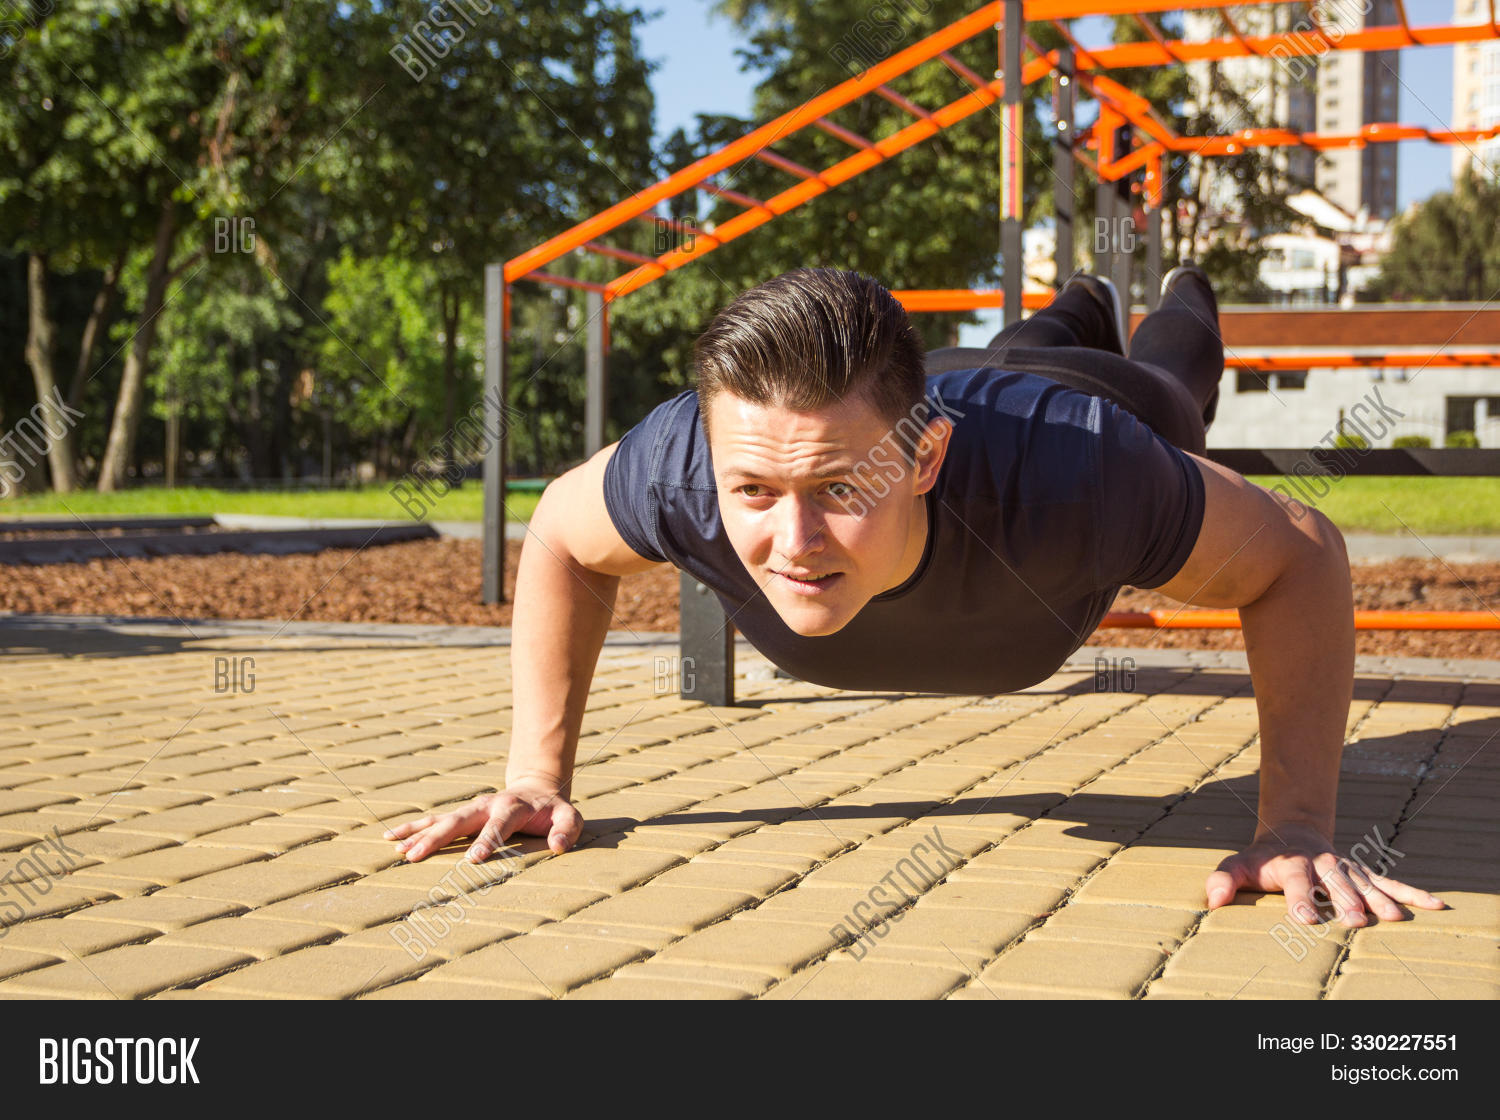 active,activity,adult,arm,athlete,athletic,attractive,body,bodybuilding,caucasian,effort,energy,exercise,fit,fitness,gym,handsome,health,healthy,indoor,lifestyle,male,man,masculine,masculinity,men,muscle,muscular,one,outdoor,outside,people,person,physical,power,push,push-up,pushup,shape,sport,sportive,strength,strong,summer,training,up,weight,workout,young